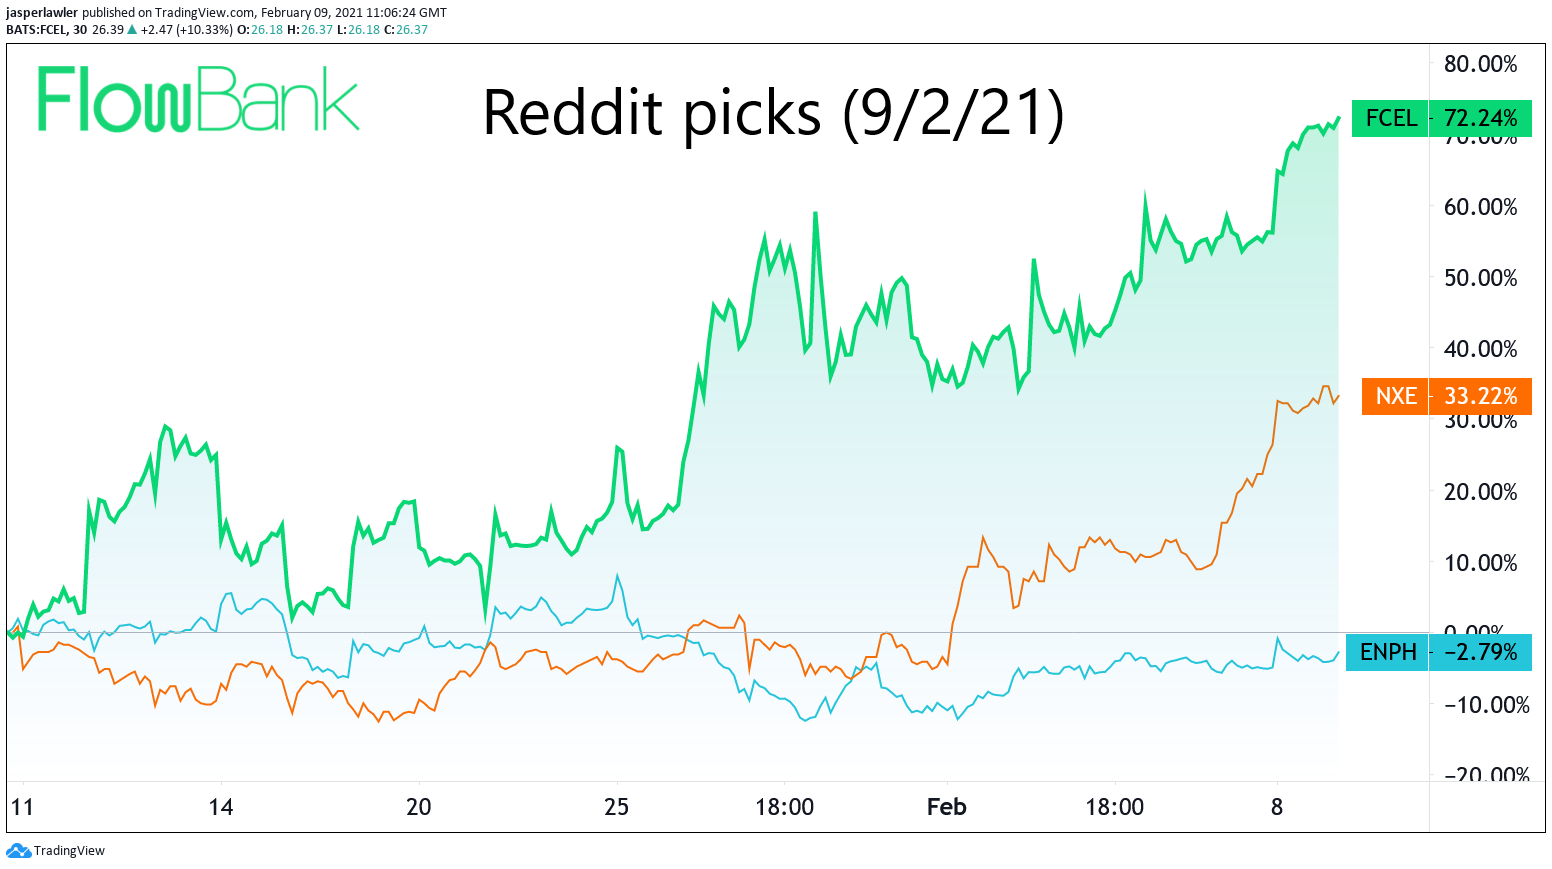 Stock tickers from #dailydiscussion on Reddit WallStreetBets (9/2/21)